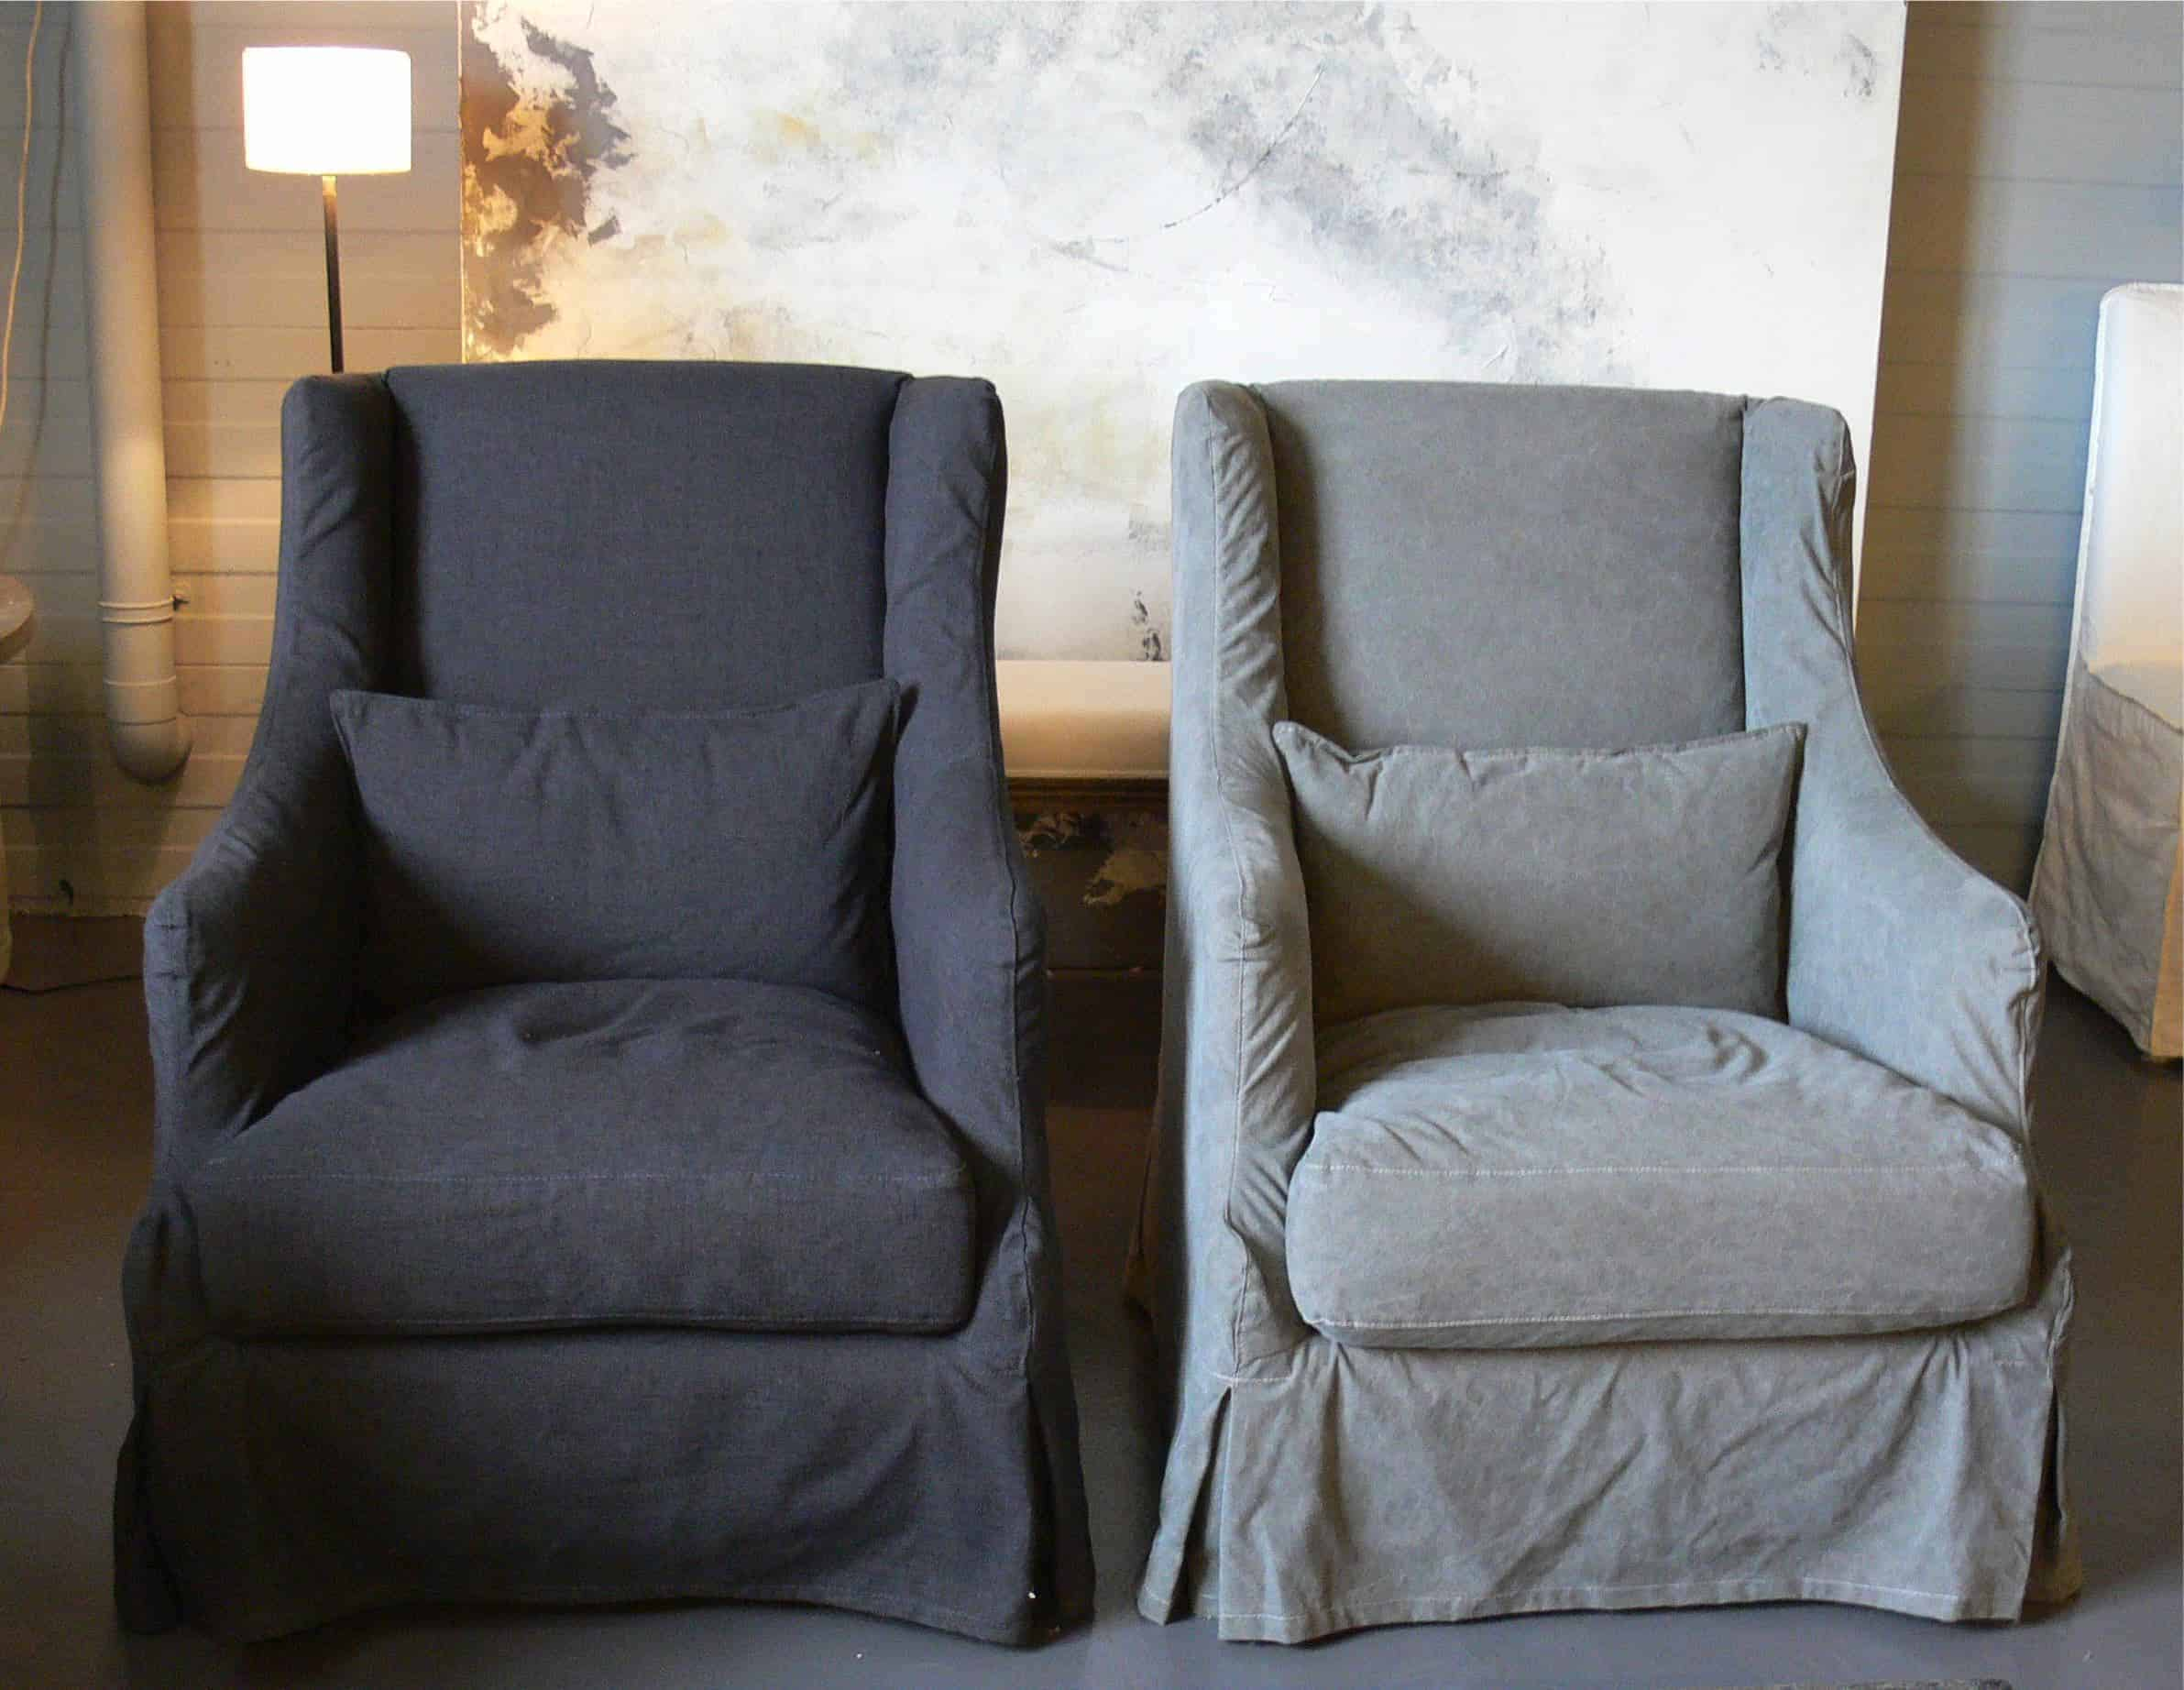 Prachtige sober model fauteuil met losse stonewashed linnen hoes